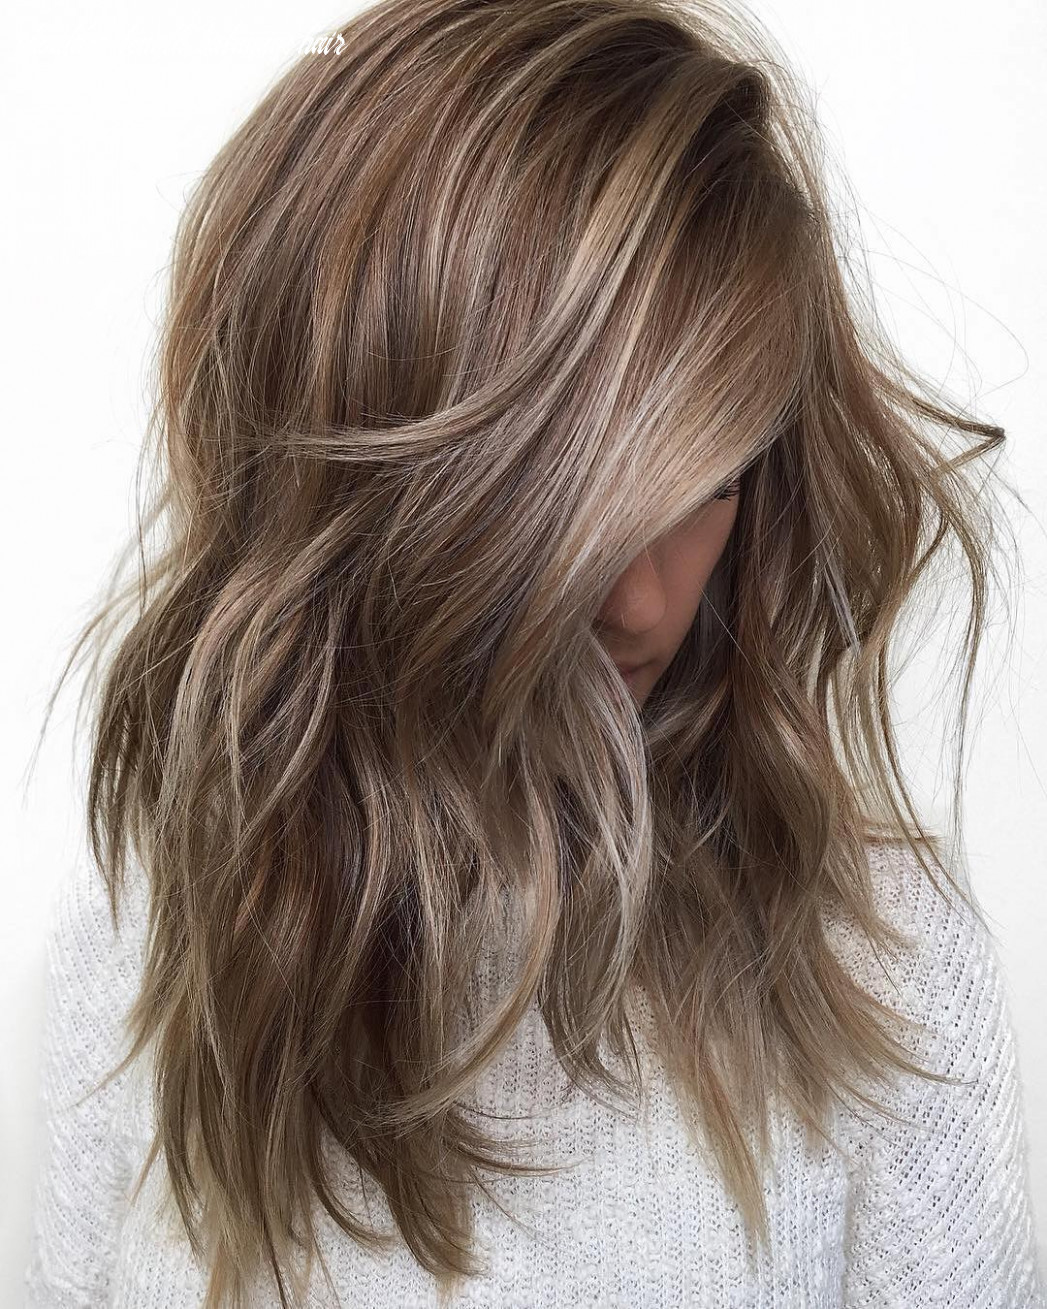 Balayage ombre hair styles for shoulder length hair nicestyles shoulder length balayage hair